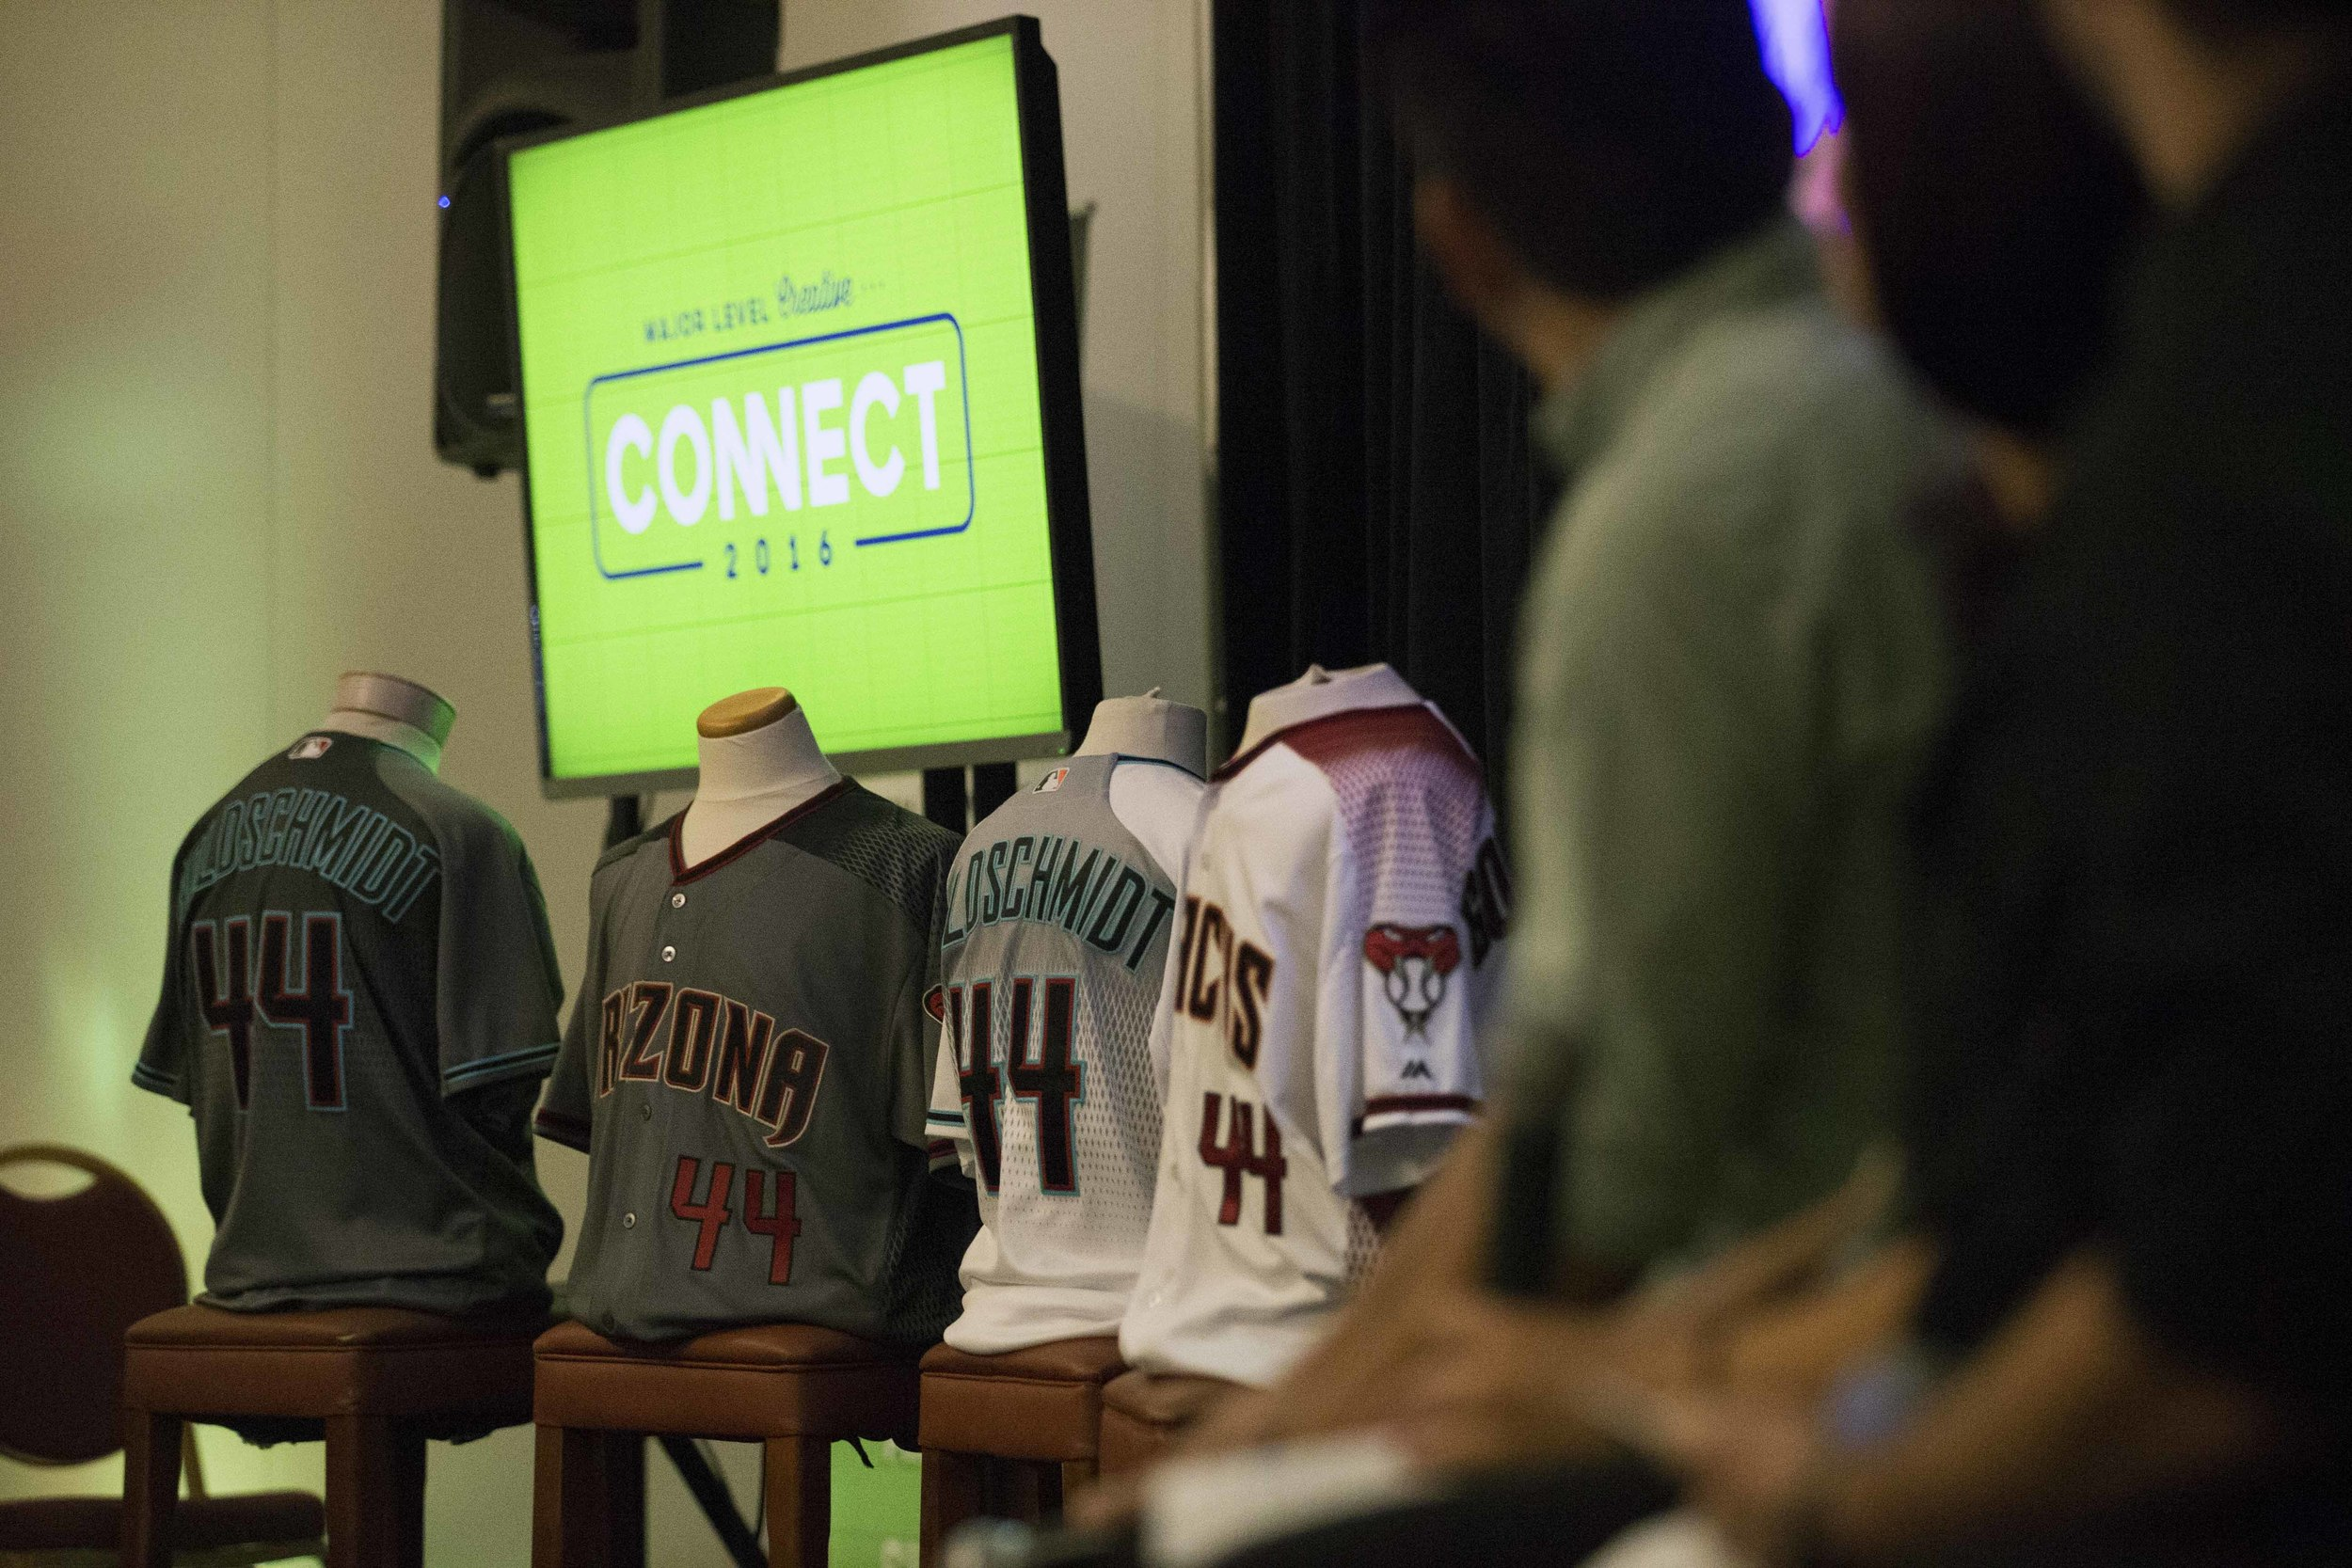 CONNECT_25944-wr.jpg